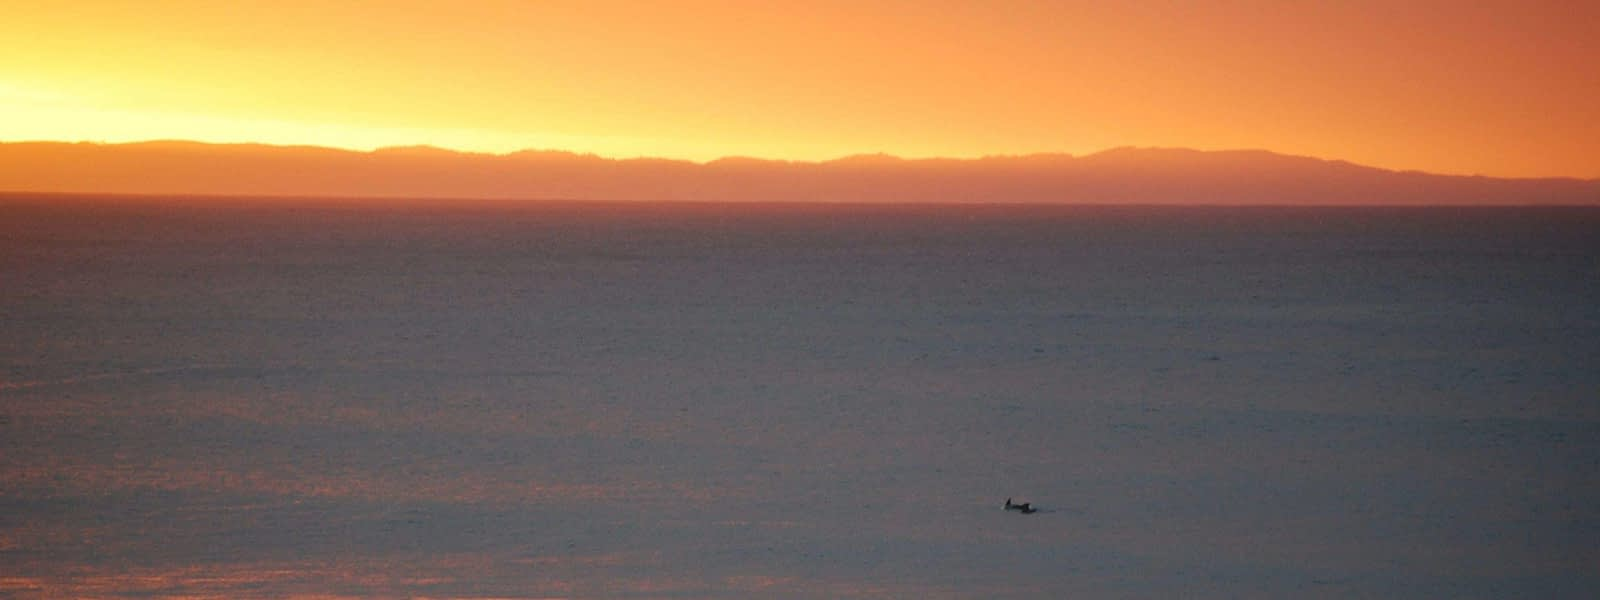 dolphins at sunrise jeffery's bay south africa